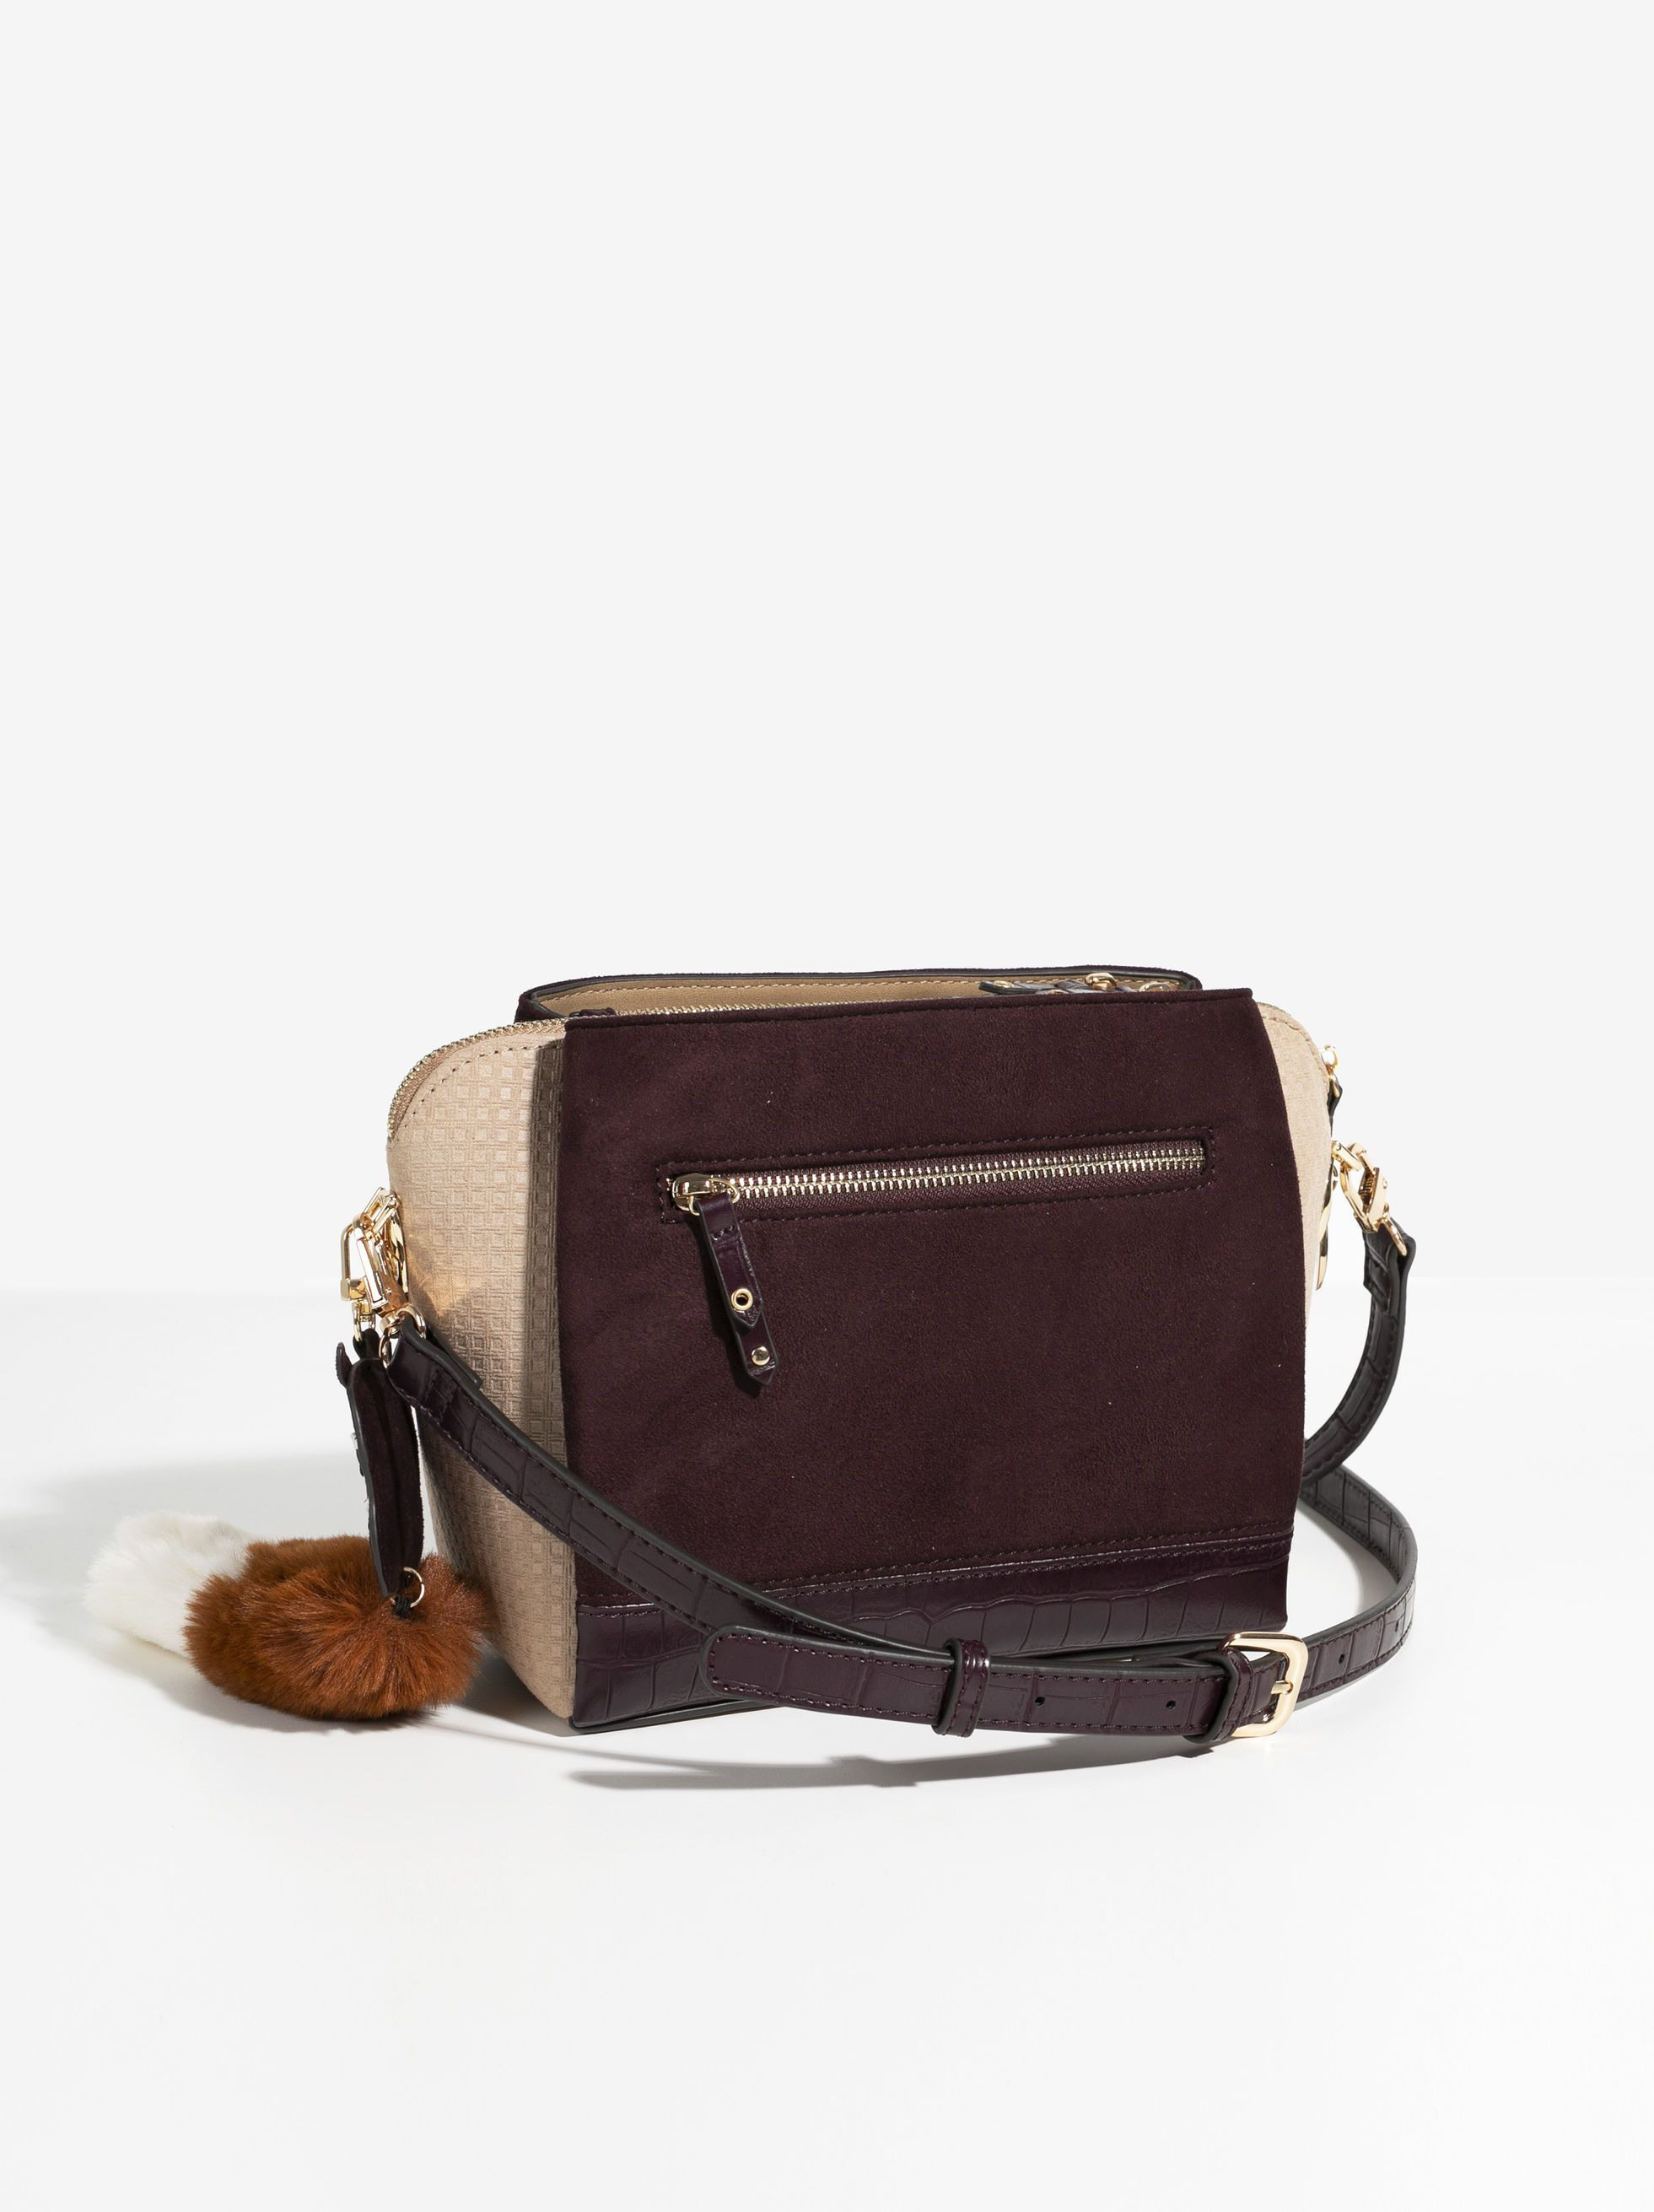 1422dedd48cc Foxy Cross Bag - - parfois.com